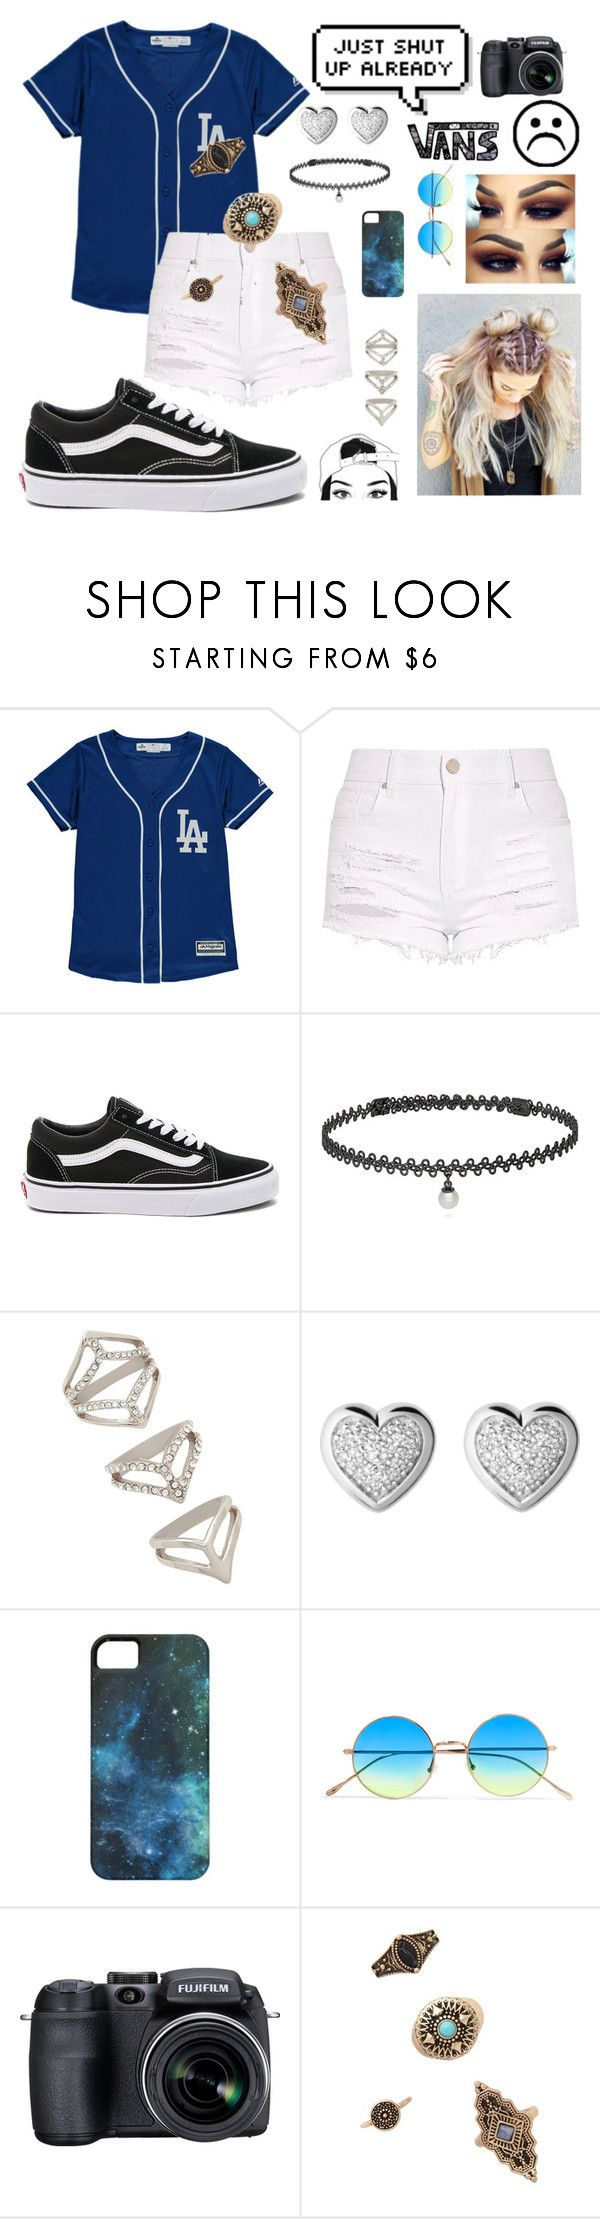 """""""Untitled #167"""" by toriclifford-5sos on Polyvore featuring Vans, BERRICLE, Forever 21, Links of London, Illesteva and Fujifilm"""